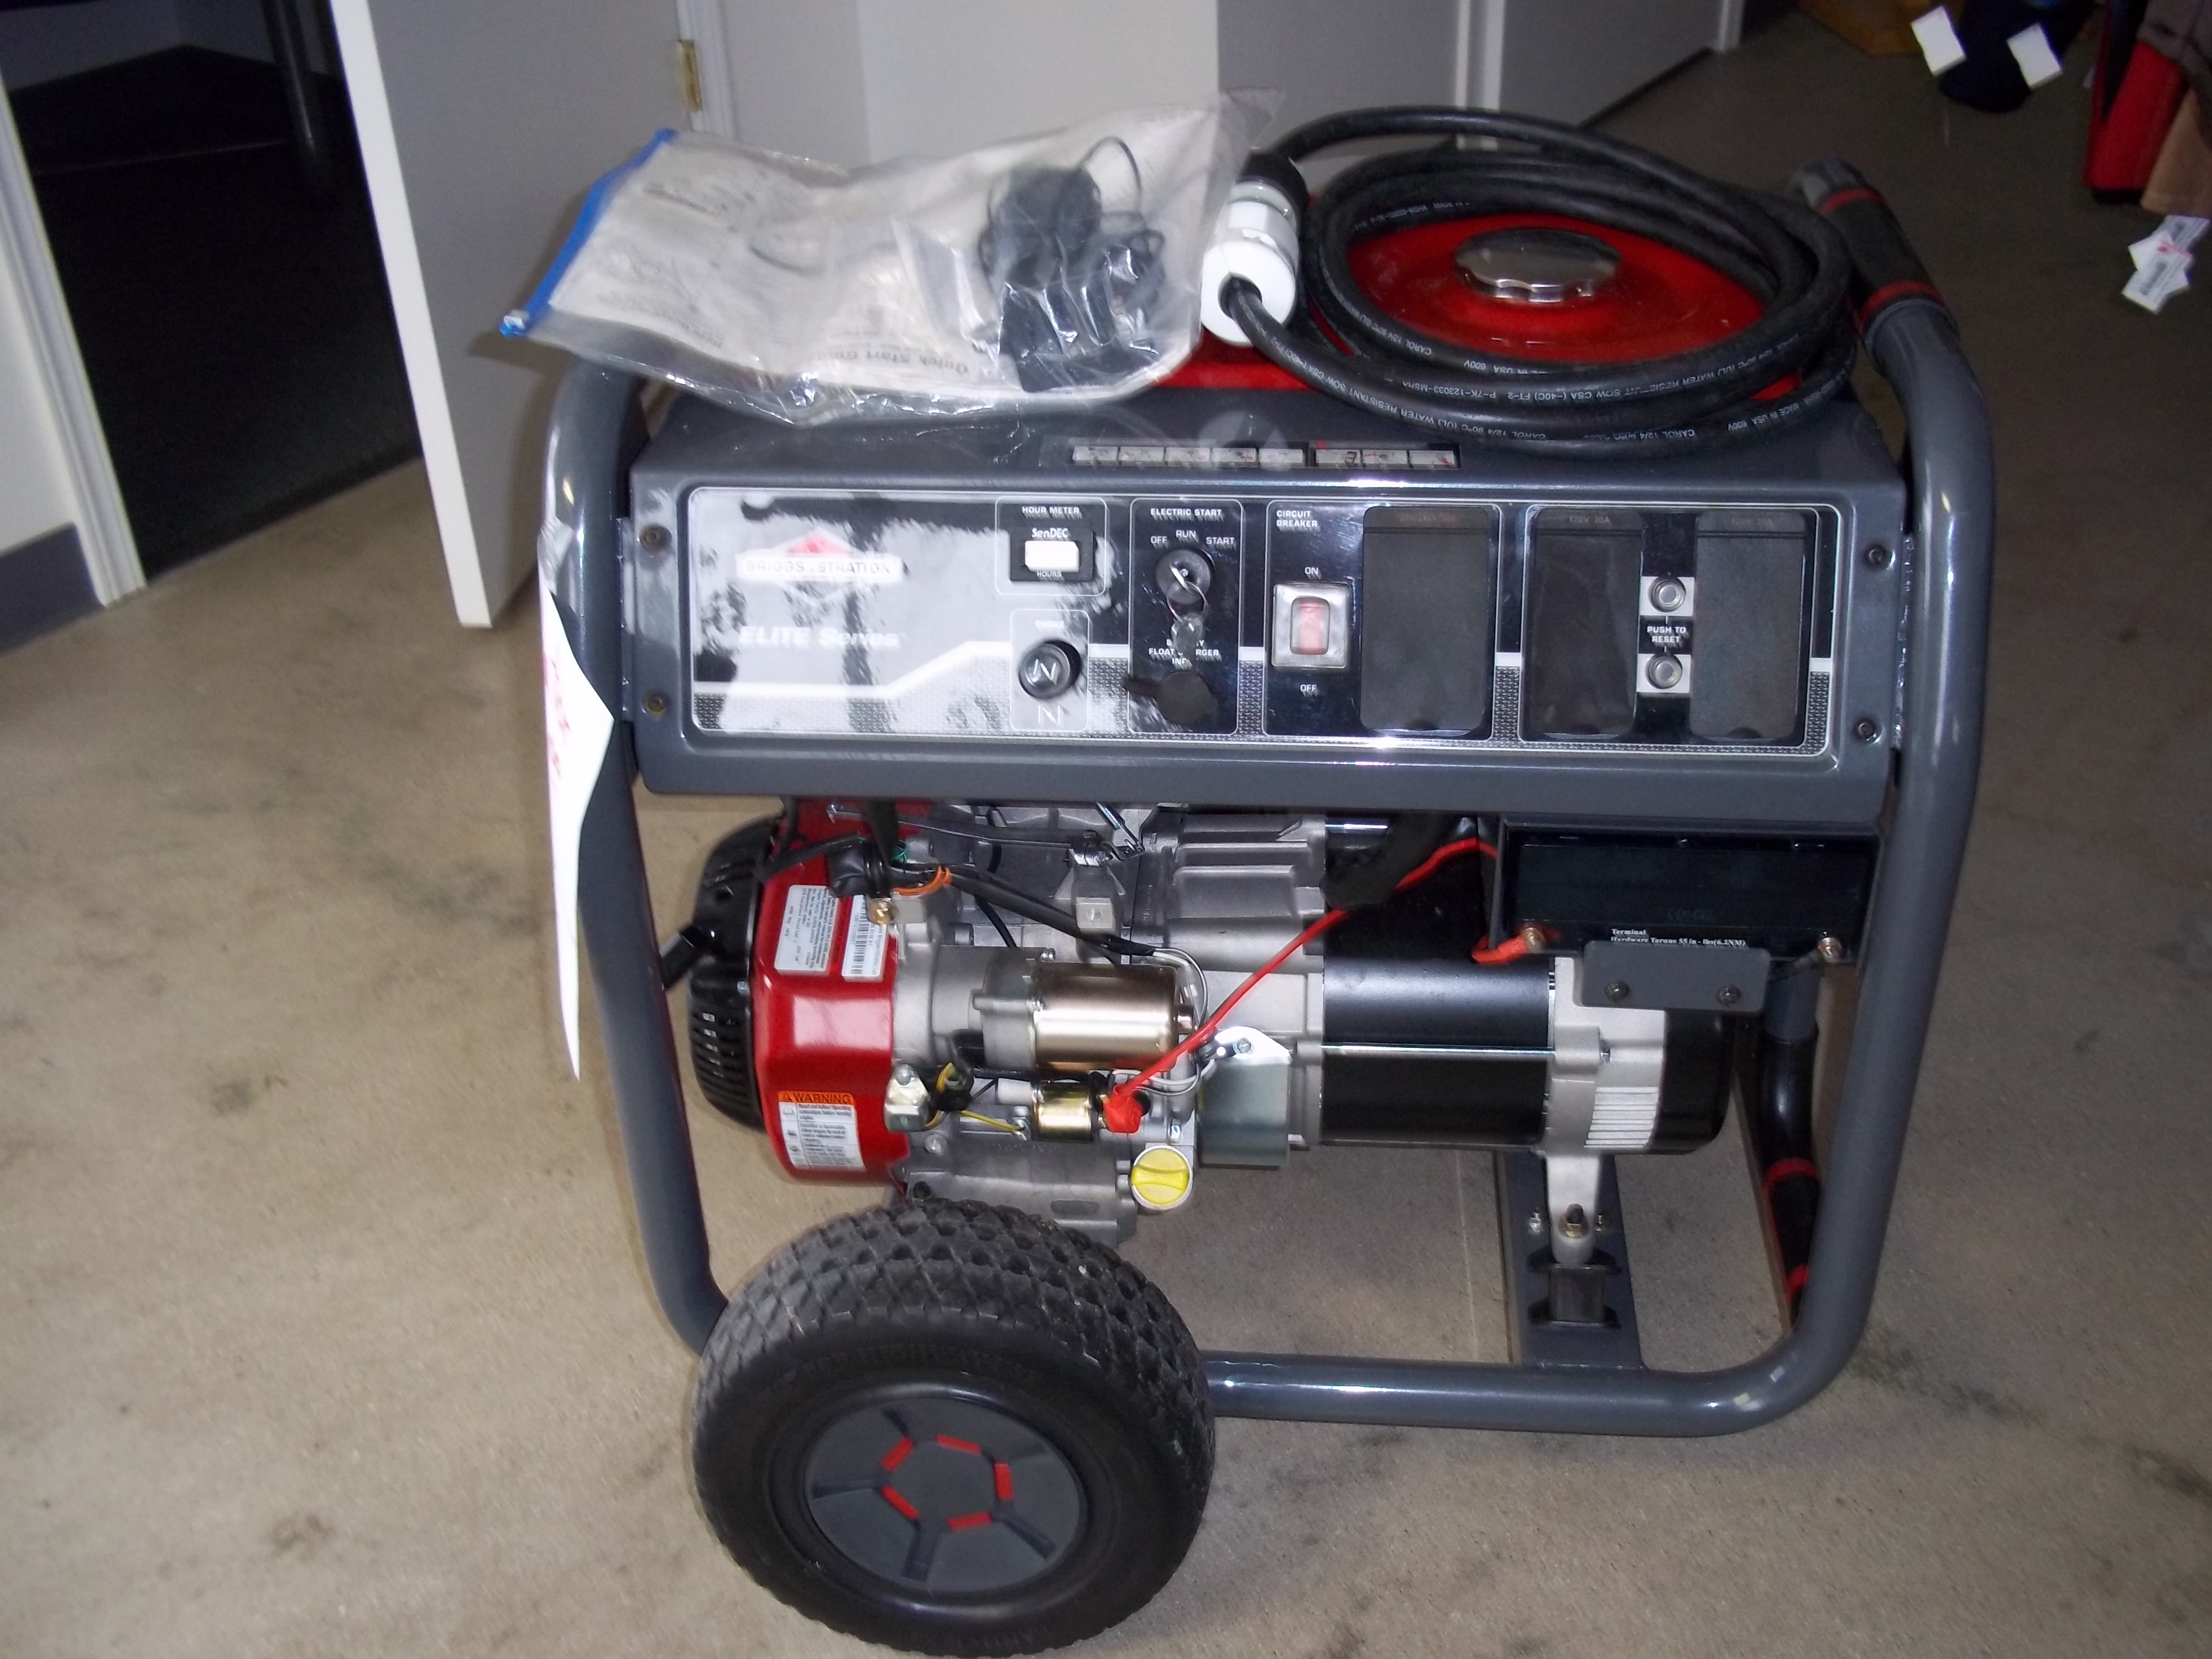 Briggs And Stratton Generator For Sale 600 Community Thrift Shop How Does An Electric Work We Are Asking This 30470 7000 Watt Start Portable However The Feature Doesnt